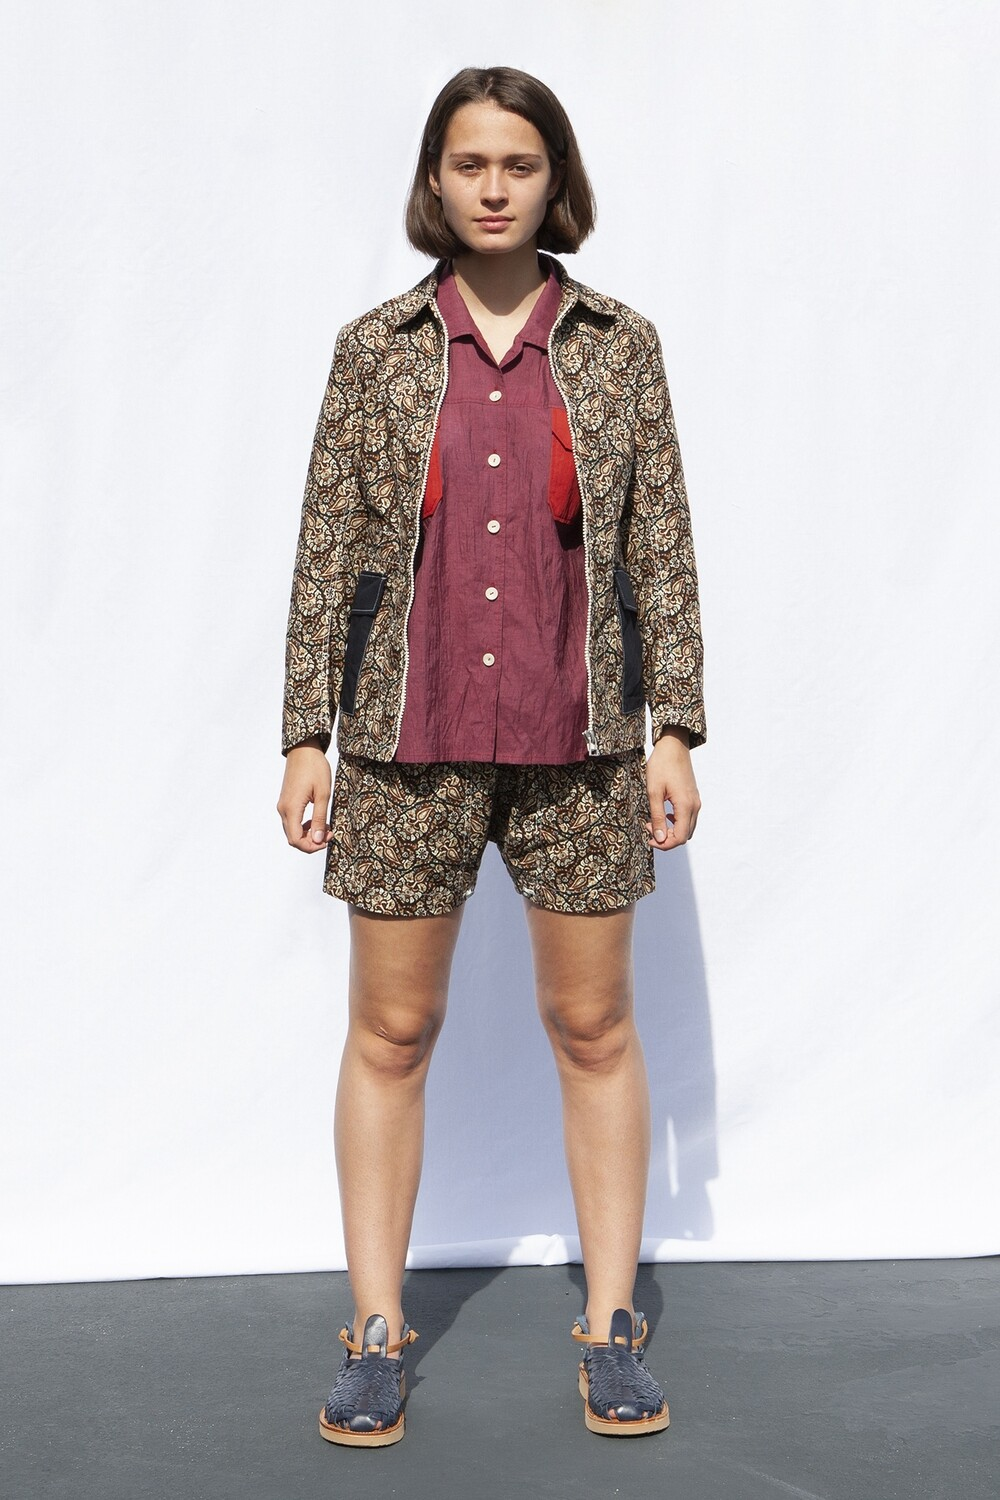 W'MENSWEAR SAILCLOTH JACKET IN PAISLEY